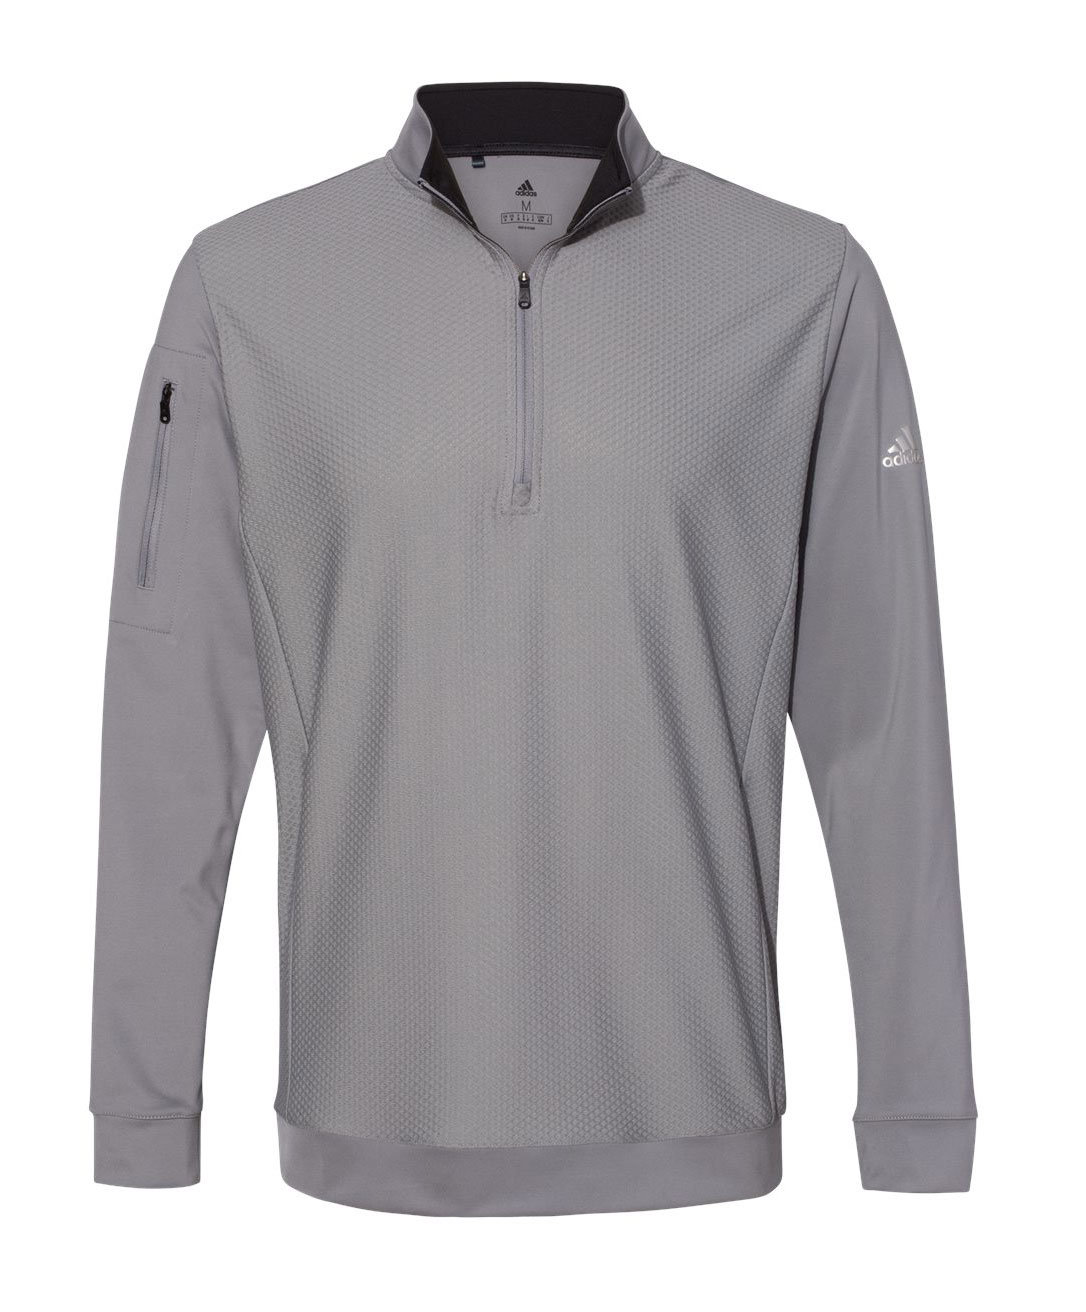 Adidas Adult Performance Texture 1/4-Zip